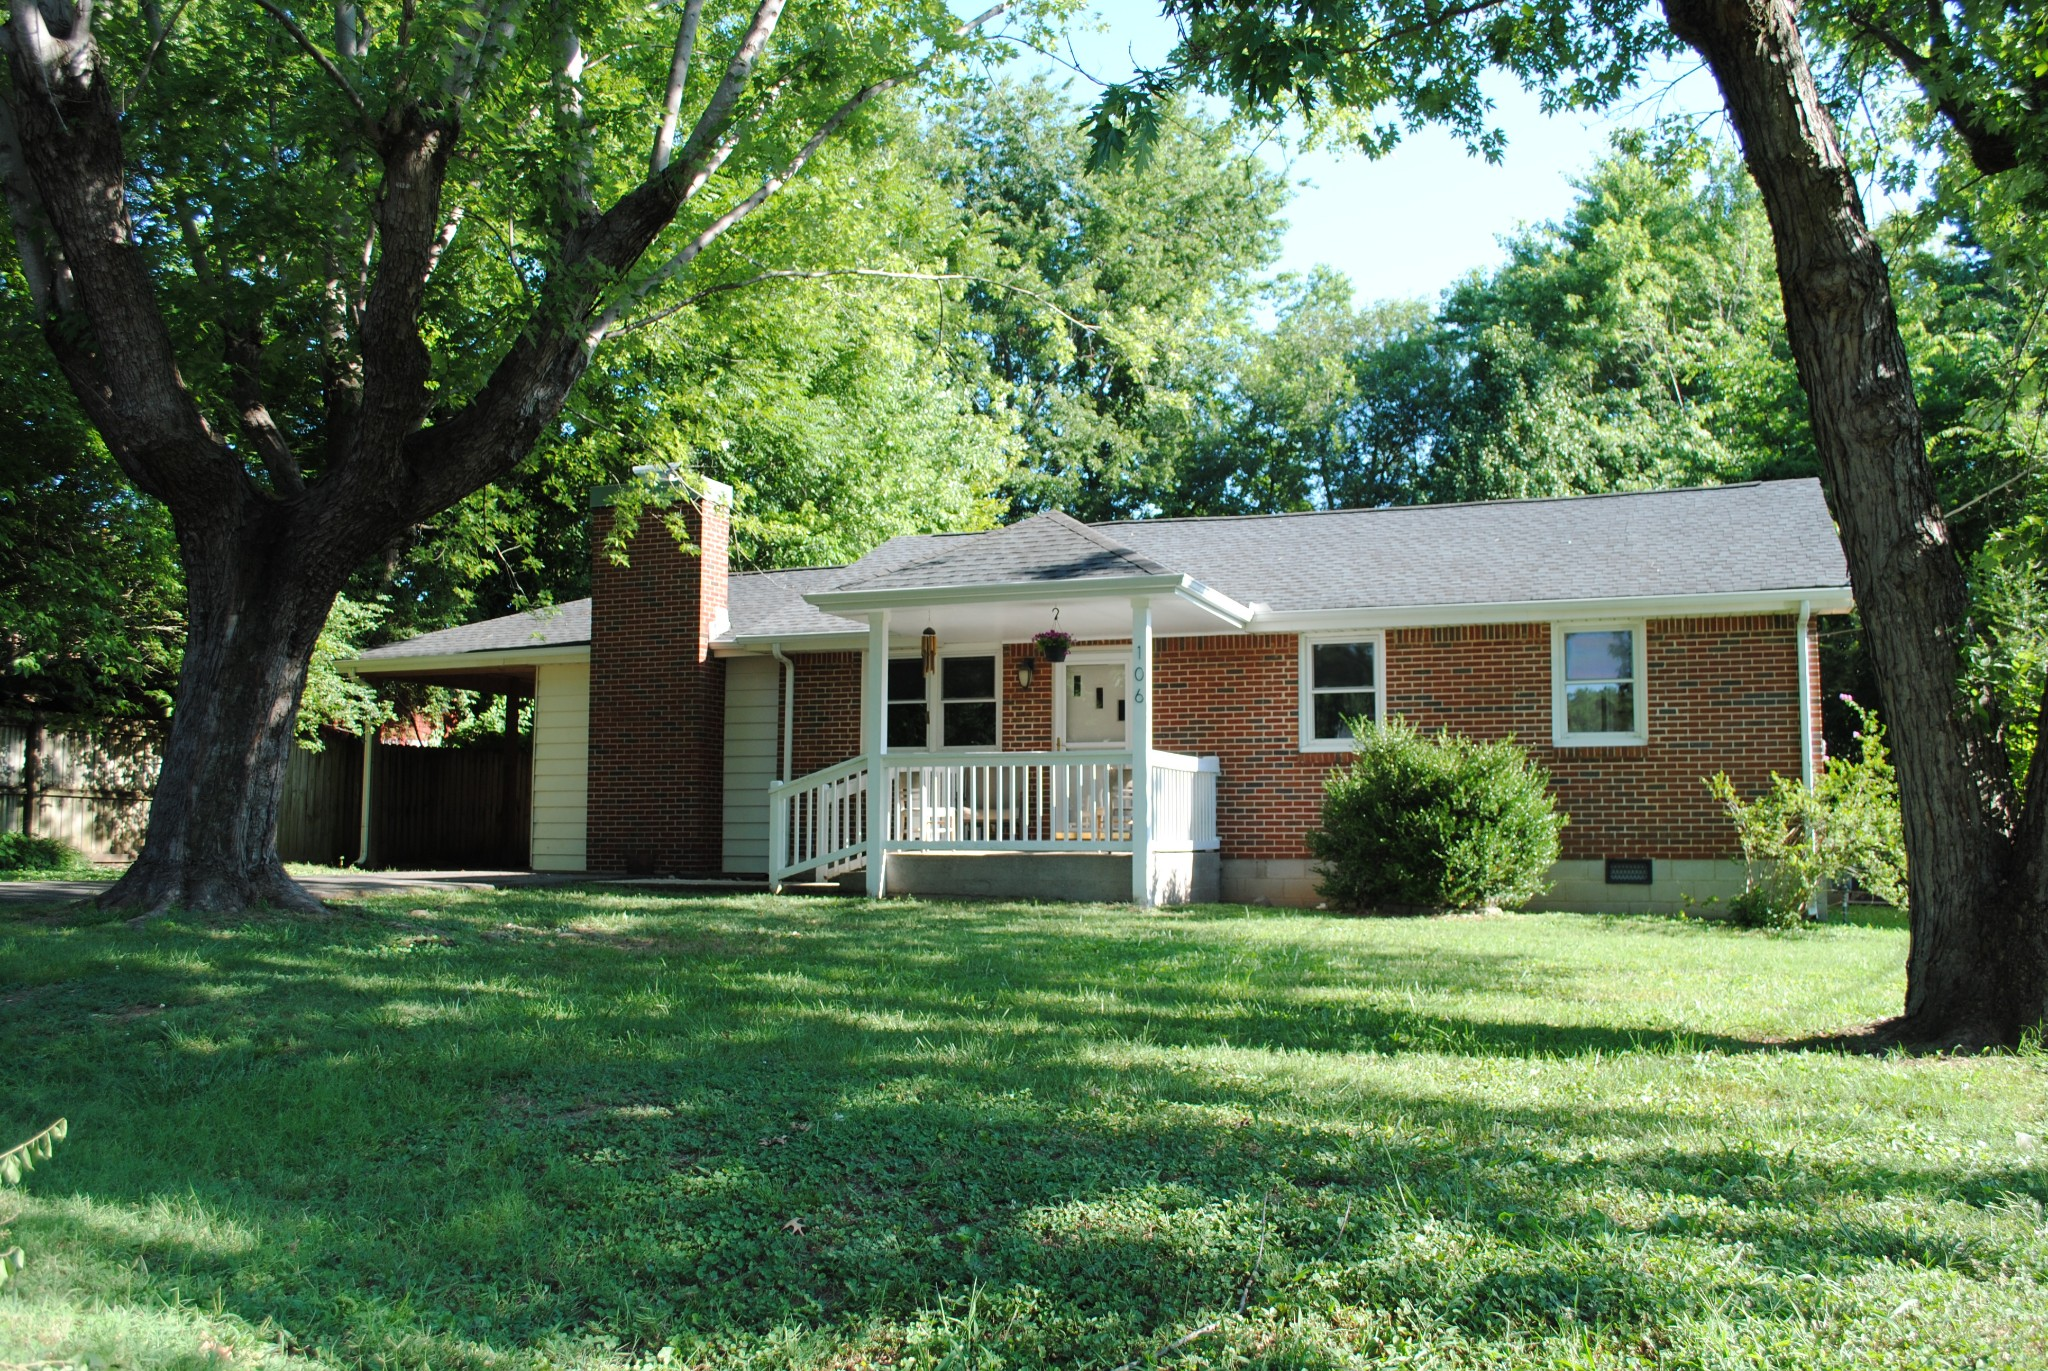 Walk to Downtown Franklin Tn from this one level ranch on quiet cul de sac. NEW floors, kitchen appliances, countertop, Gas tankless water heater, paint and MORE!! Cozy den with wood burning fireplace. Fenced back yard with large mature shade trees. Storage building stays. NO HOA. Covered front porch. Covered side porch or carport.